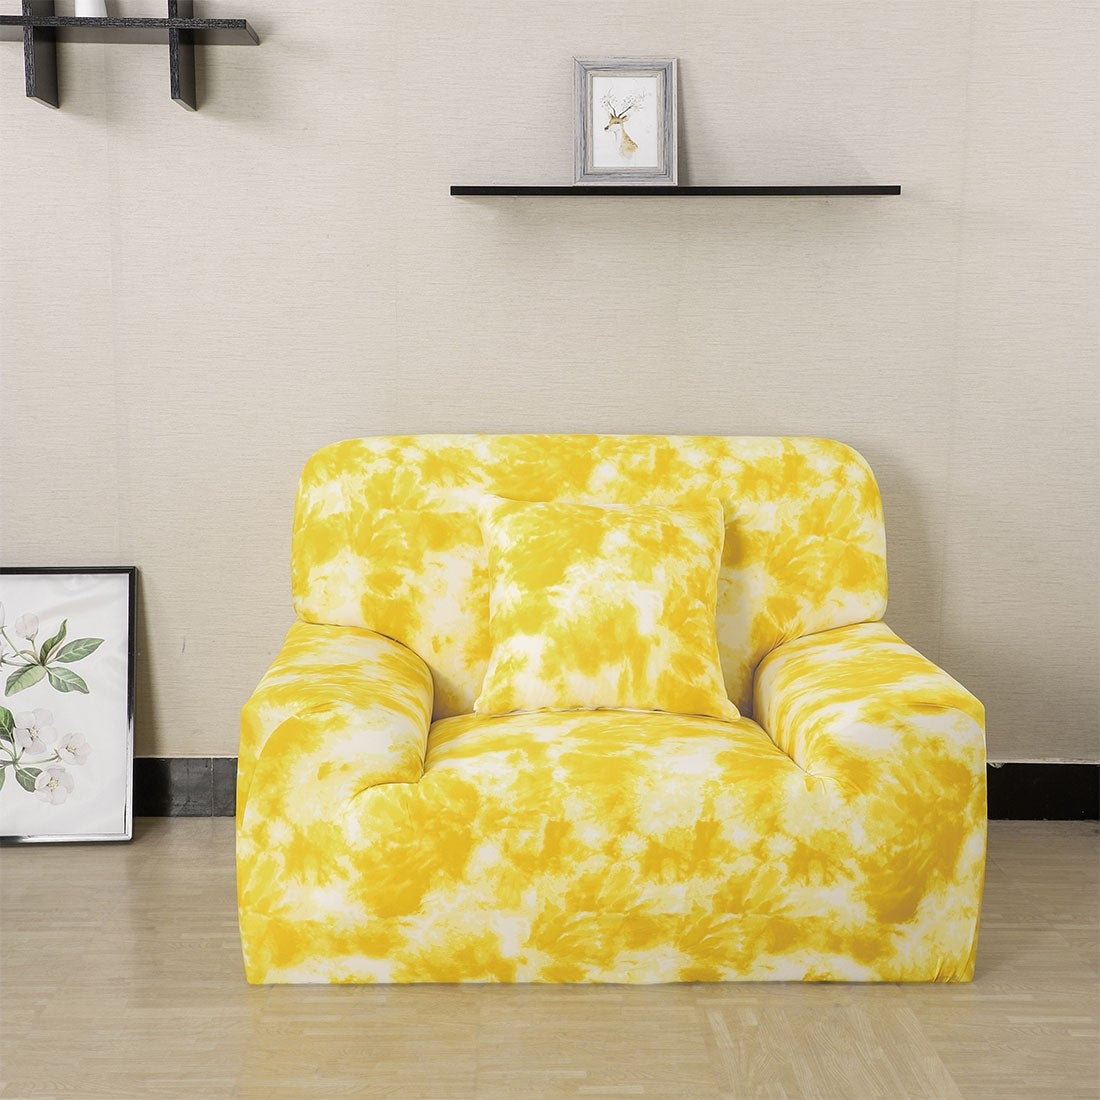 Groovy Soft Floral Stretch Sofa Couch Cover Slipcovers Protector Short Links Chair Design For Home Short Linksinfo